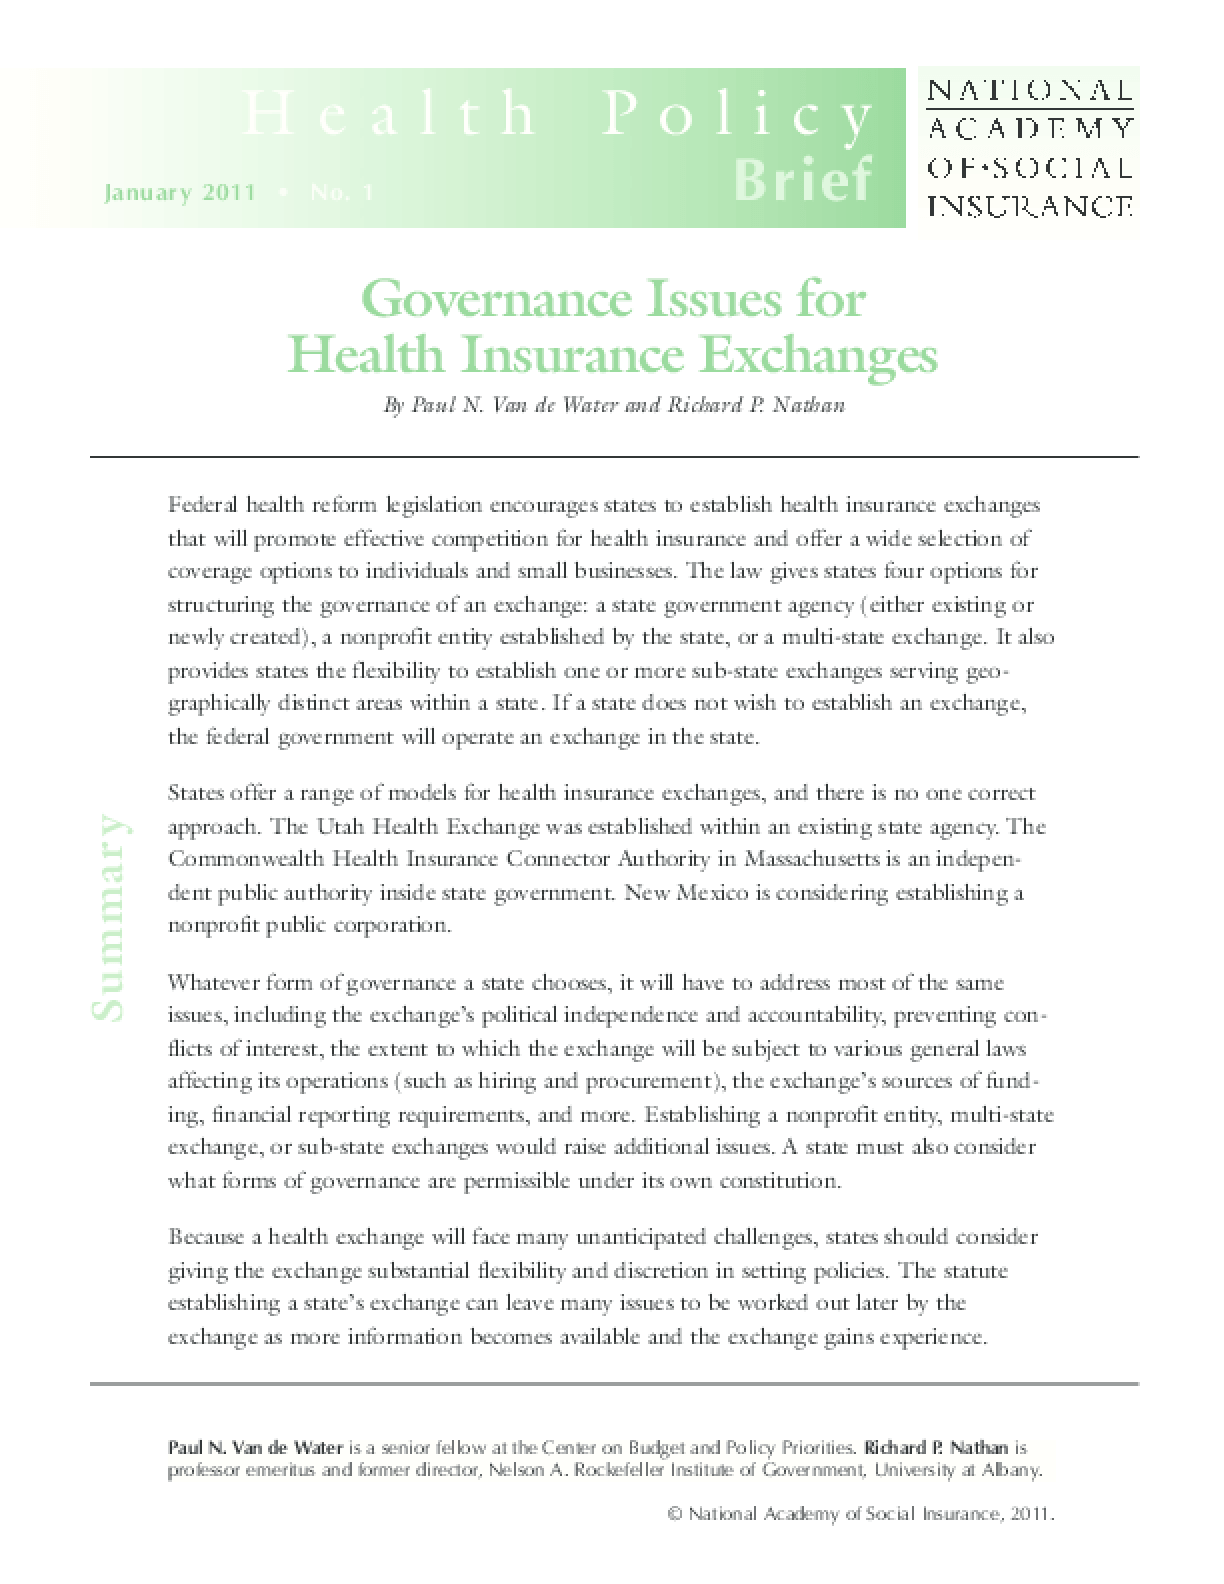 Governance Issues for Health Insurance Exchanges